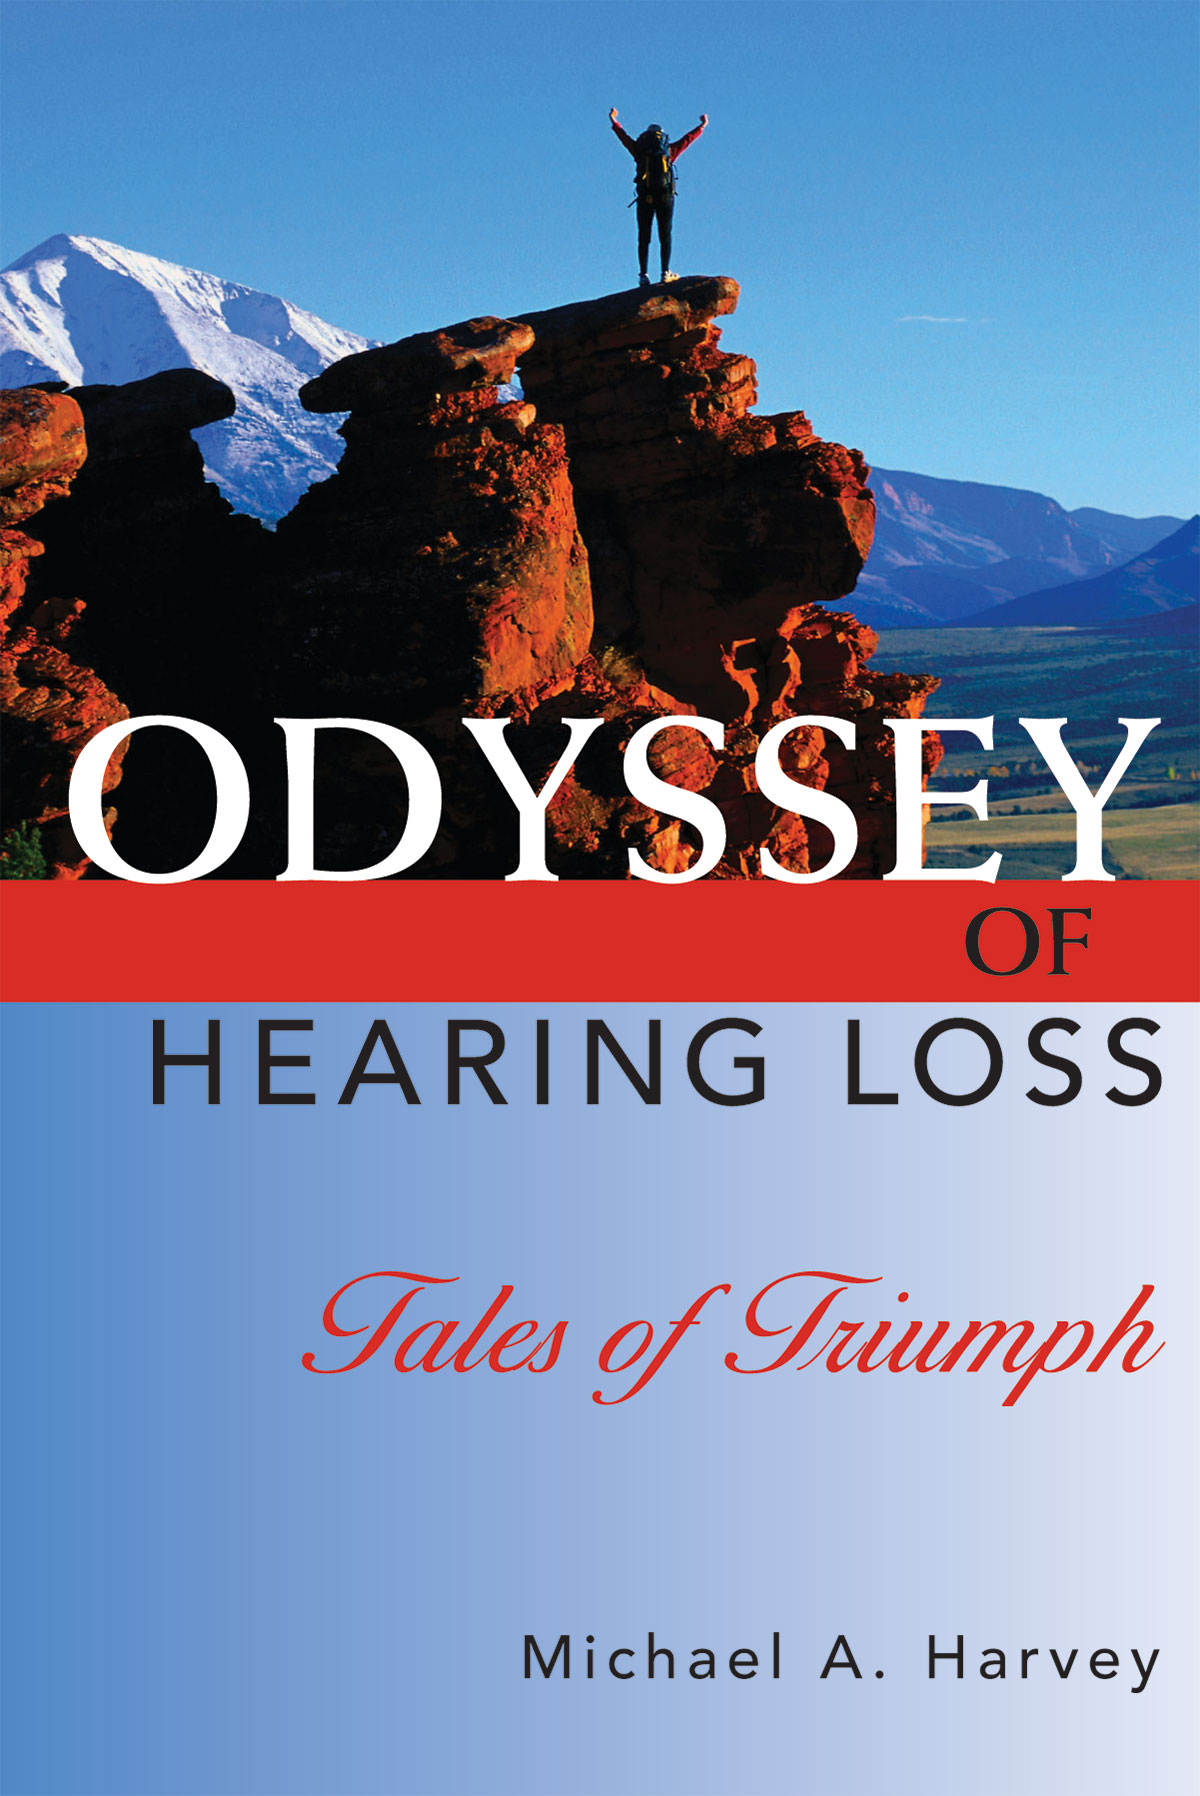 Odyssey of Hearing Loss: Tales of Triumph